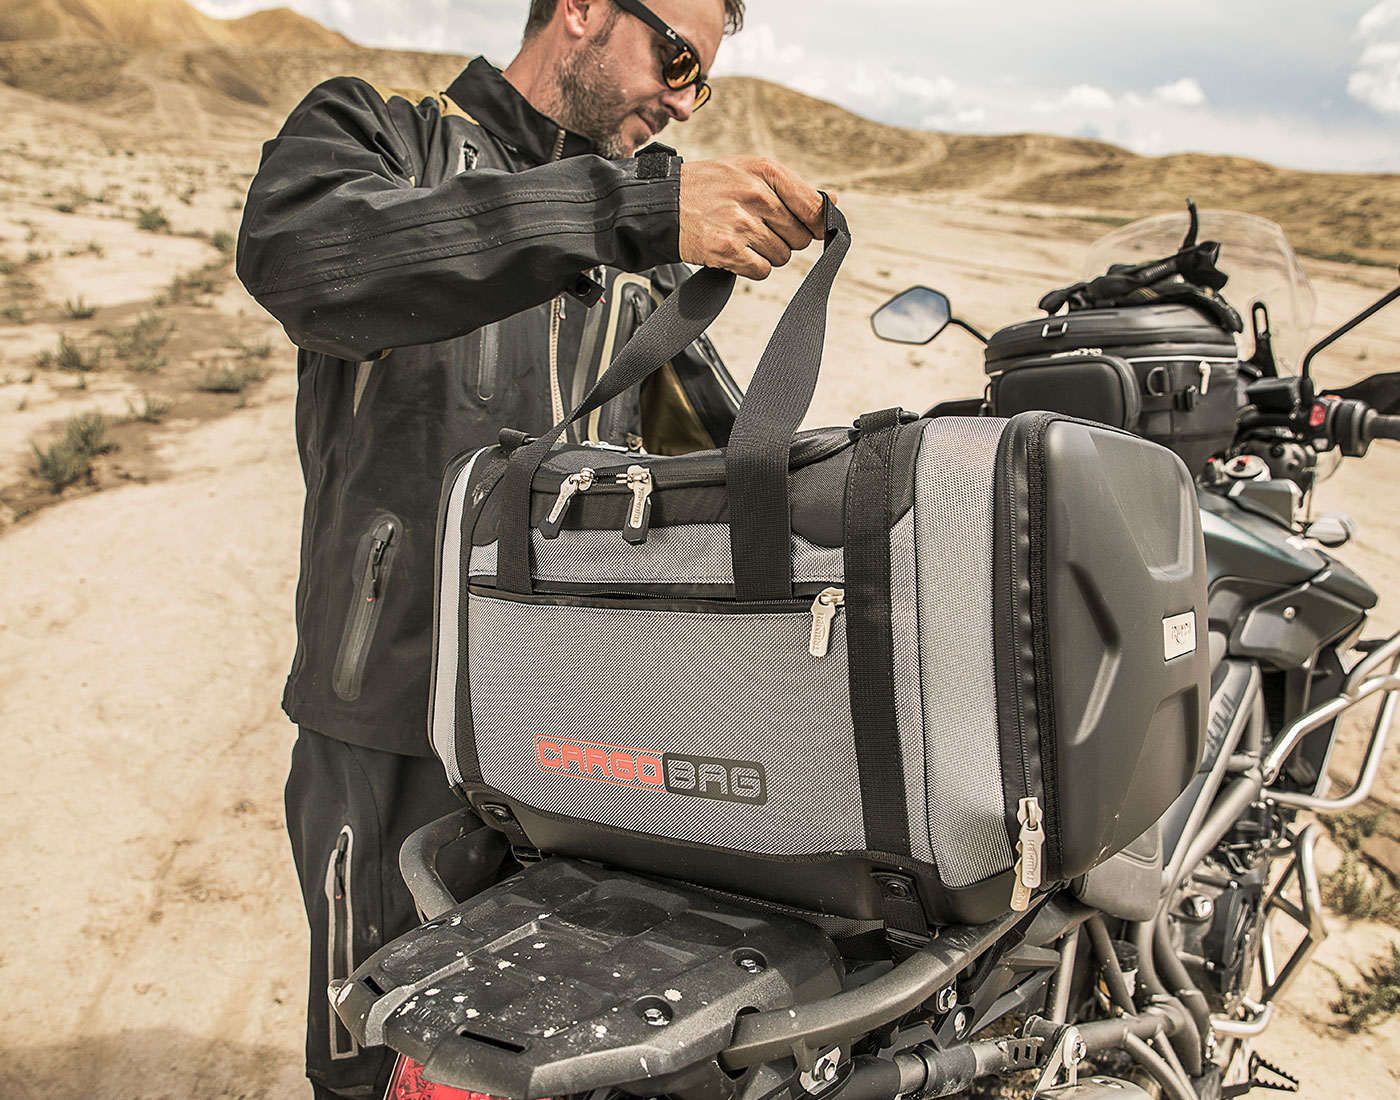 Triumph accessory and luggage systems